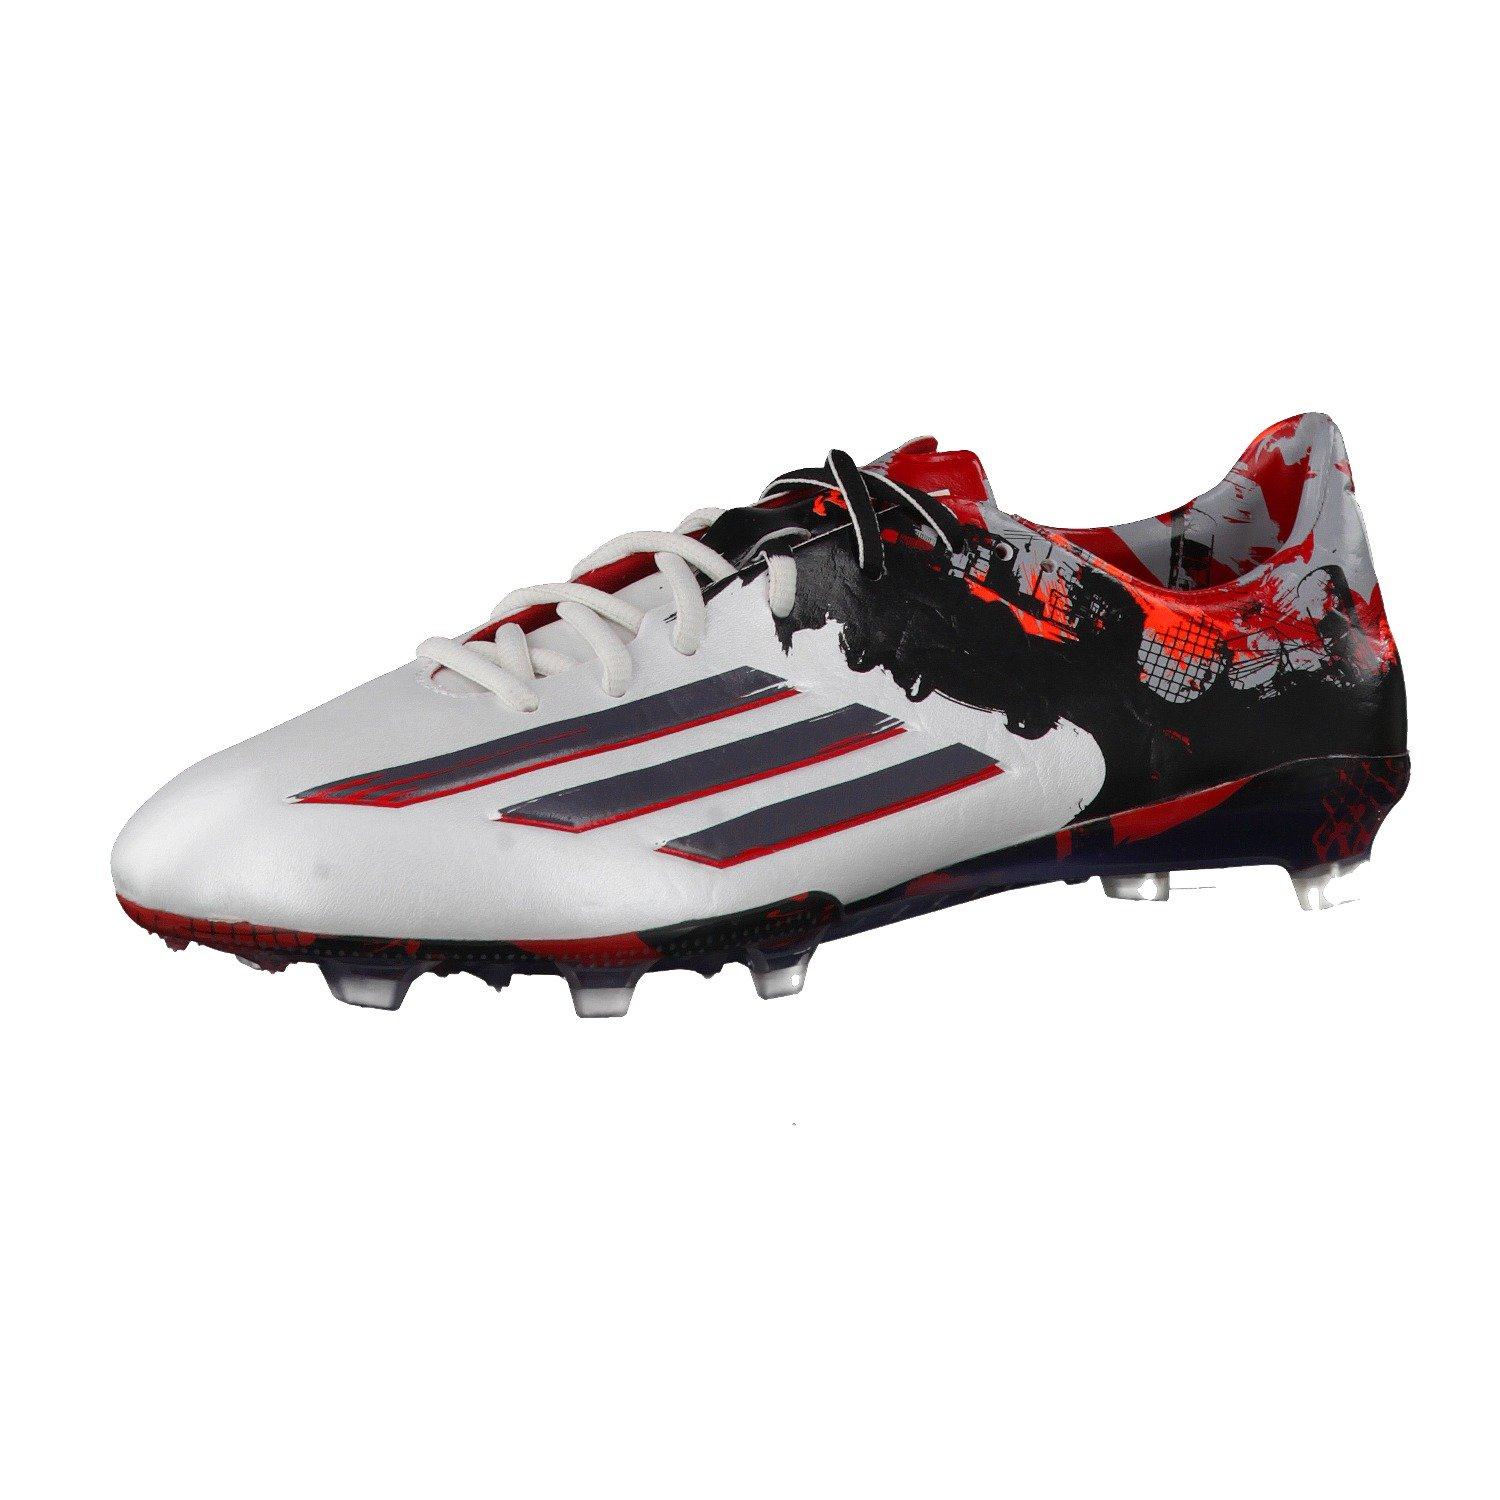 adidas Messi 10.1 FG Mens Football Boots Soccer Cleats Firm Ground B00UTWXEZM 12 D(M) US White Granite Scarlet Red B23767